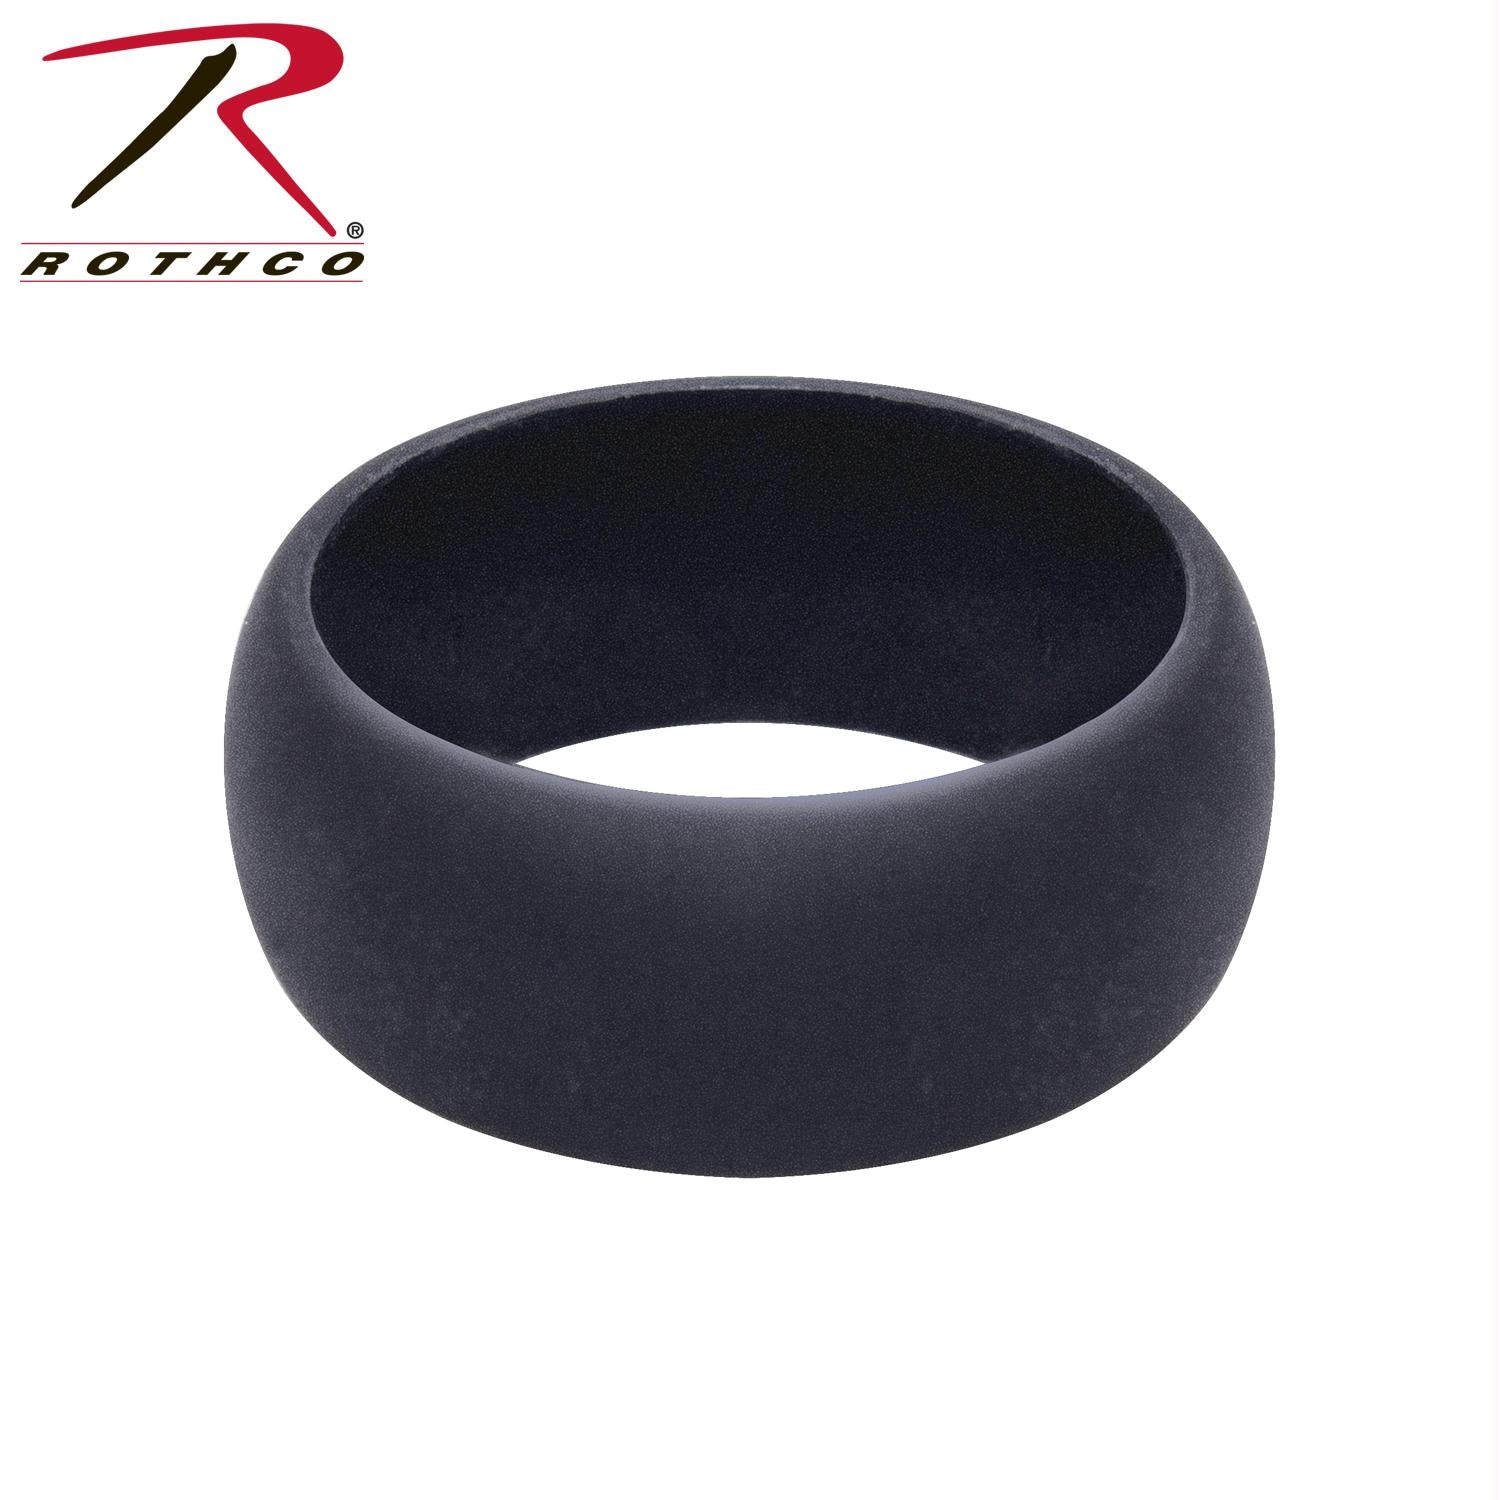 Rothco Silicone Ring - Ring Size 12 (2 5/8 inches)